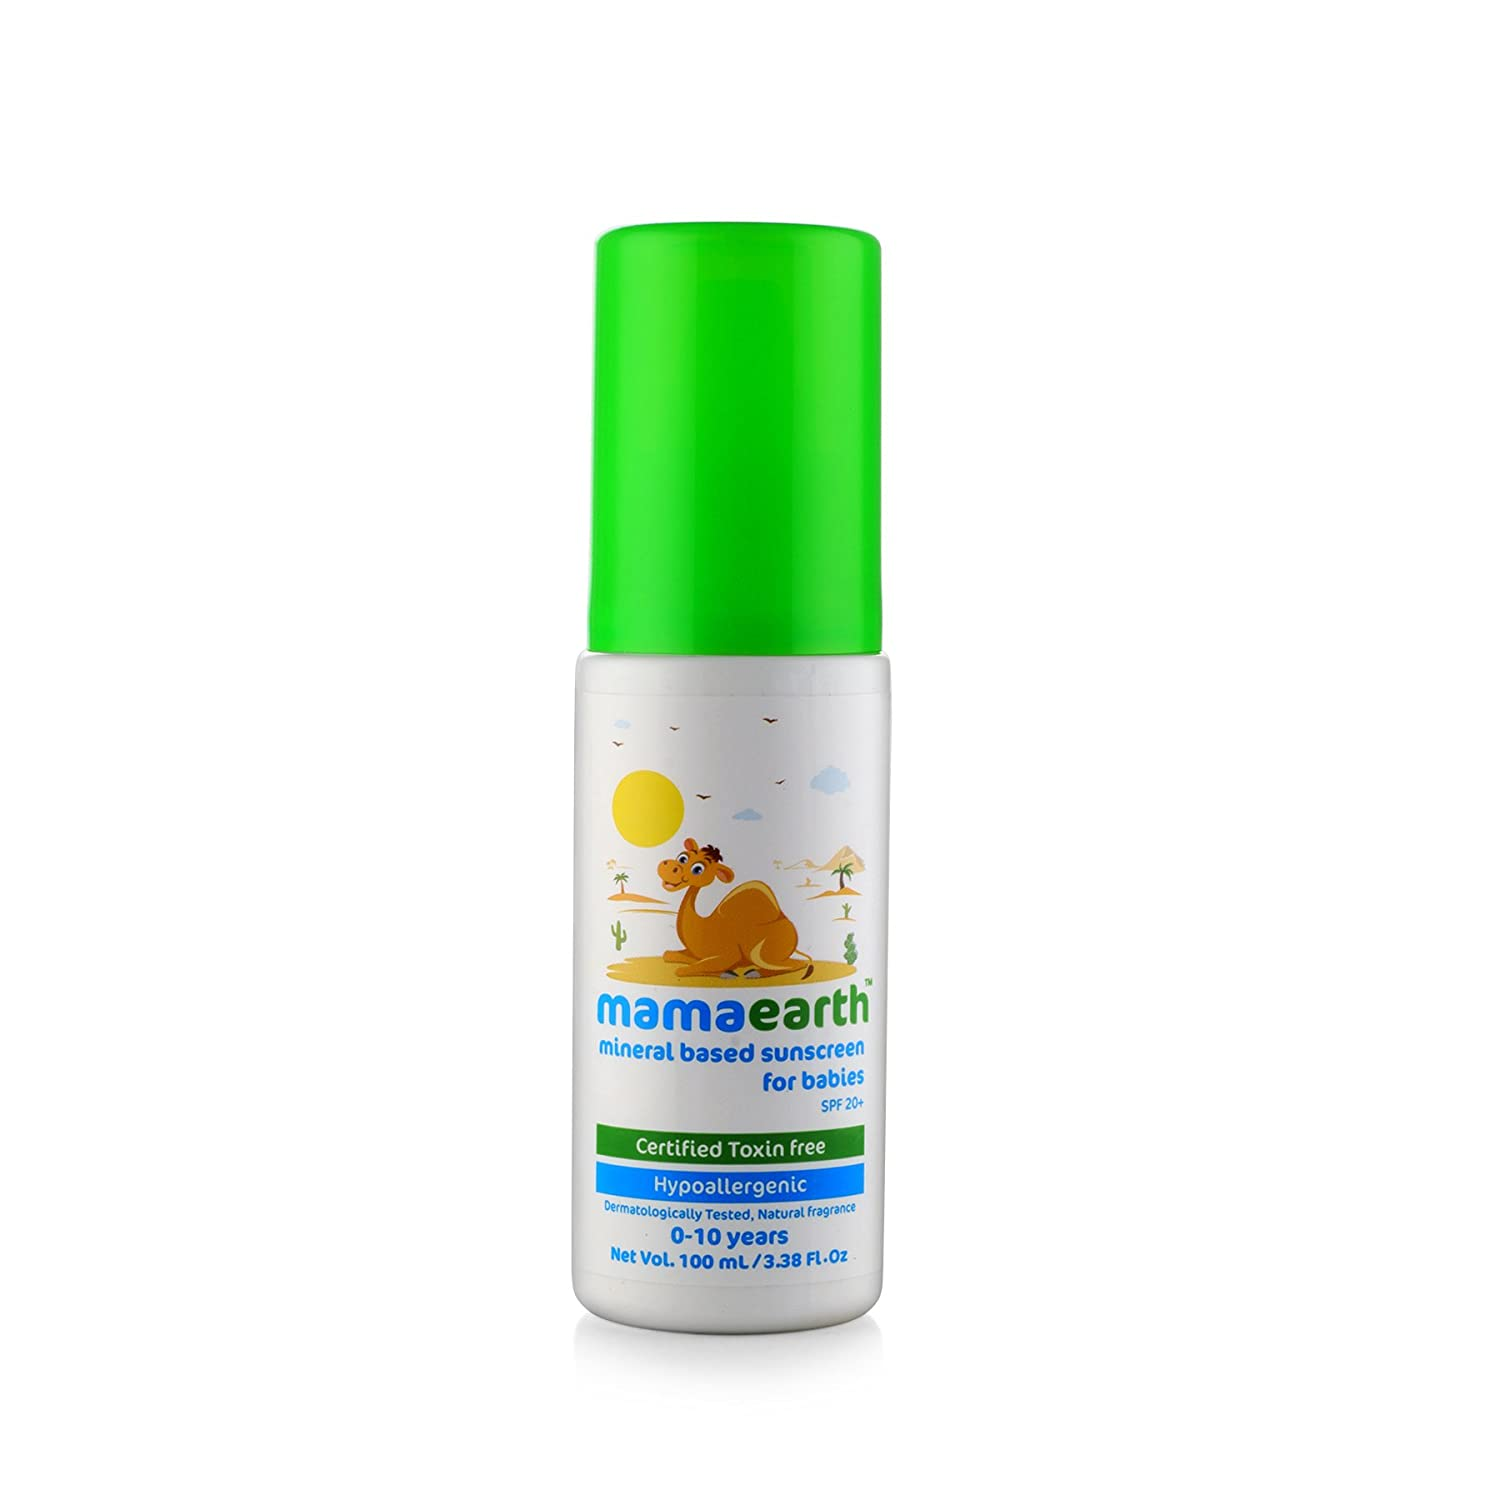 Mamaearth Mineral Based Sunscreen Baby Lotion